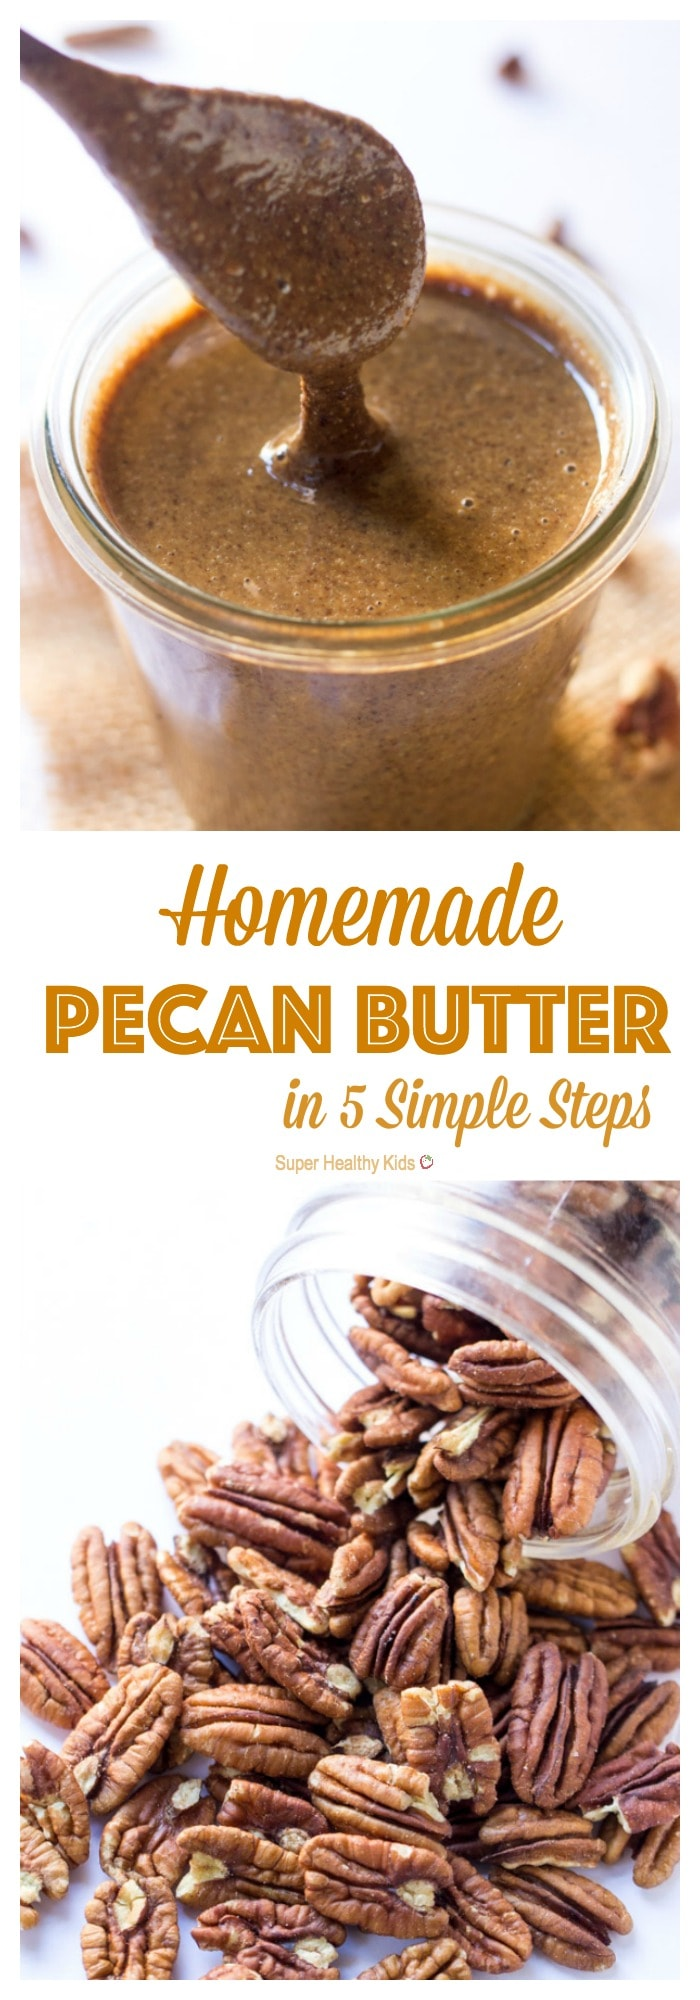 Homemade Pecan Butter: 5 Simple Steps. Learn how to make this healthy homemade pecan butter in just 5 simple steps. Save yourself time and money at the store and start making nut butters at home! http://www.superhealthykids.com/homemade-pecan-butter-5-simple-steps/